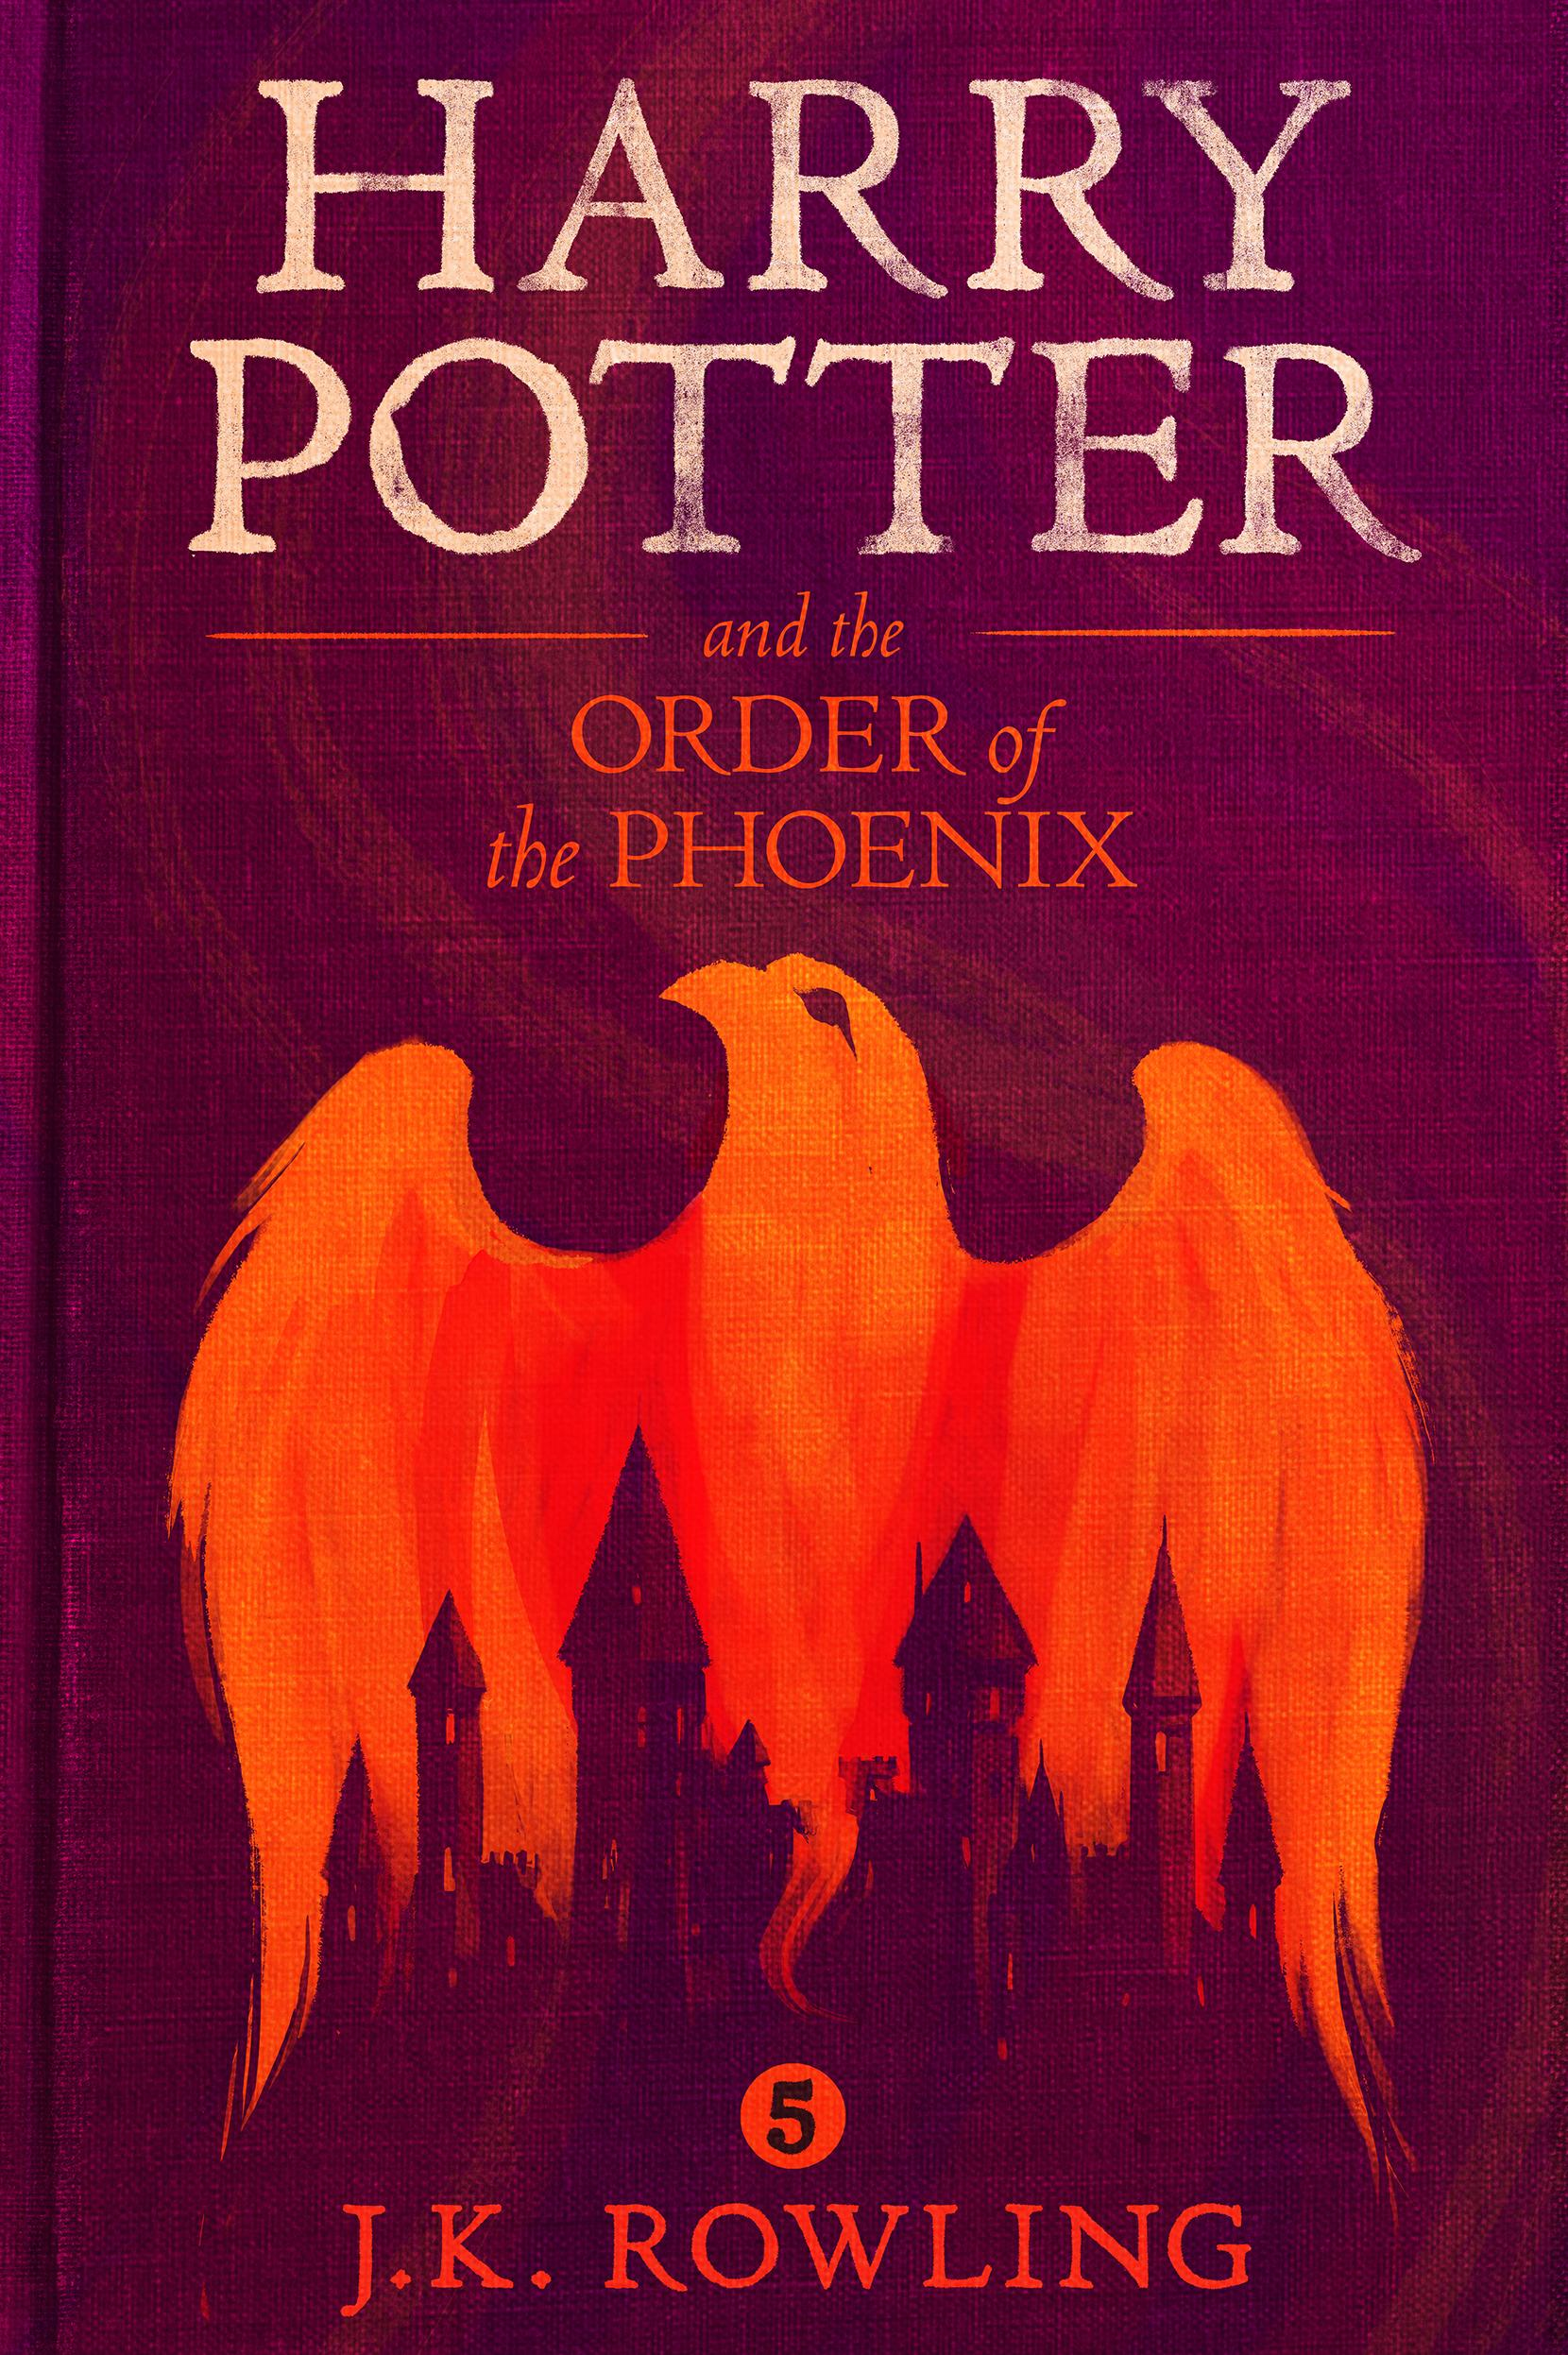 the magic and fantasy in j k rowlings series harry potter the question of its appropriateness for ch Q&a for science fiction and fantasy enthusiasts and a major character in the harry potter series according to jk rowling.